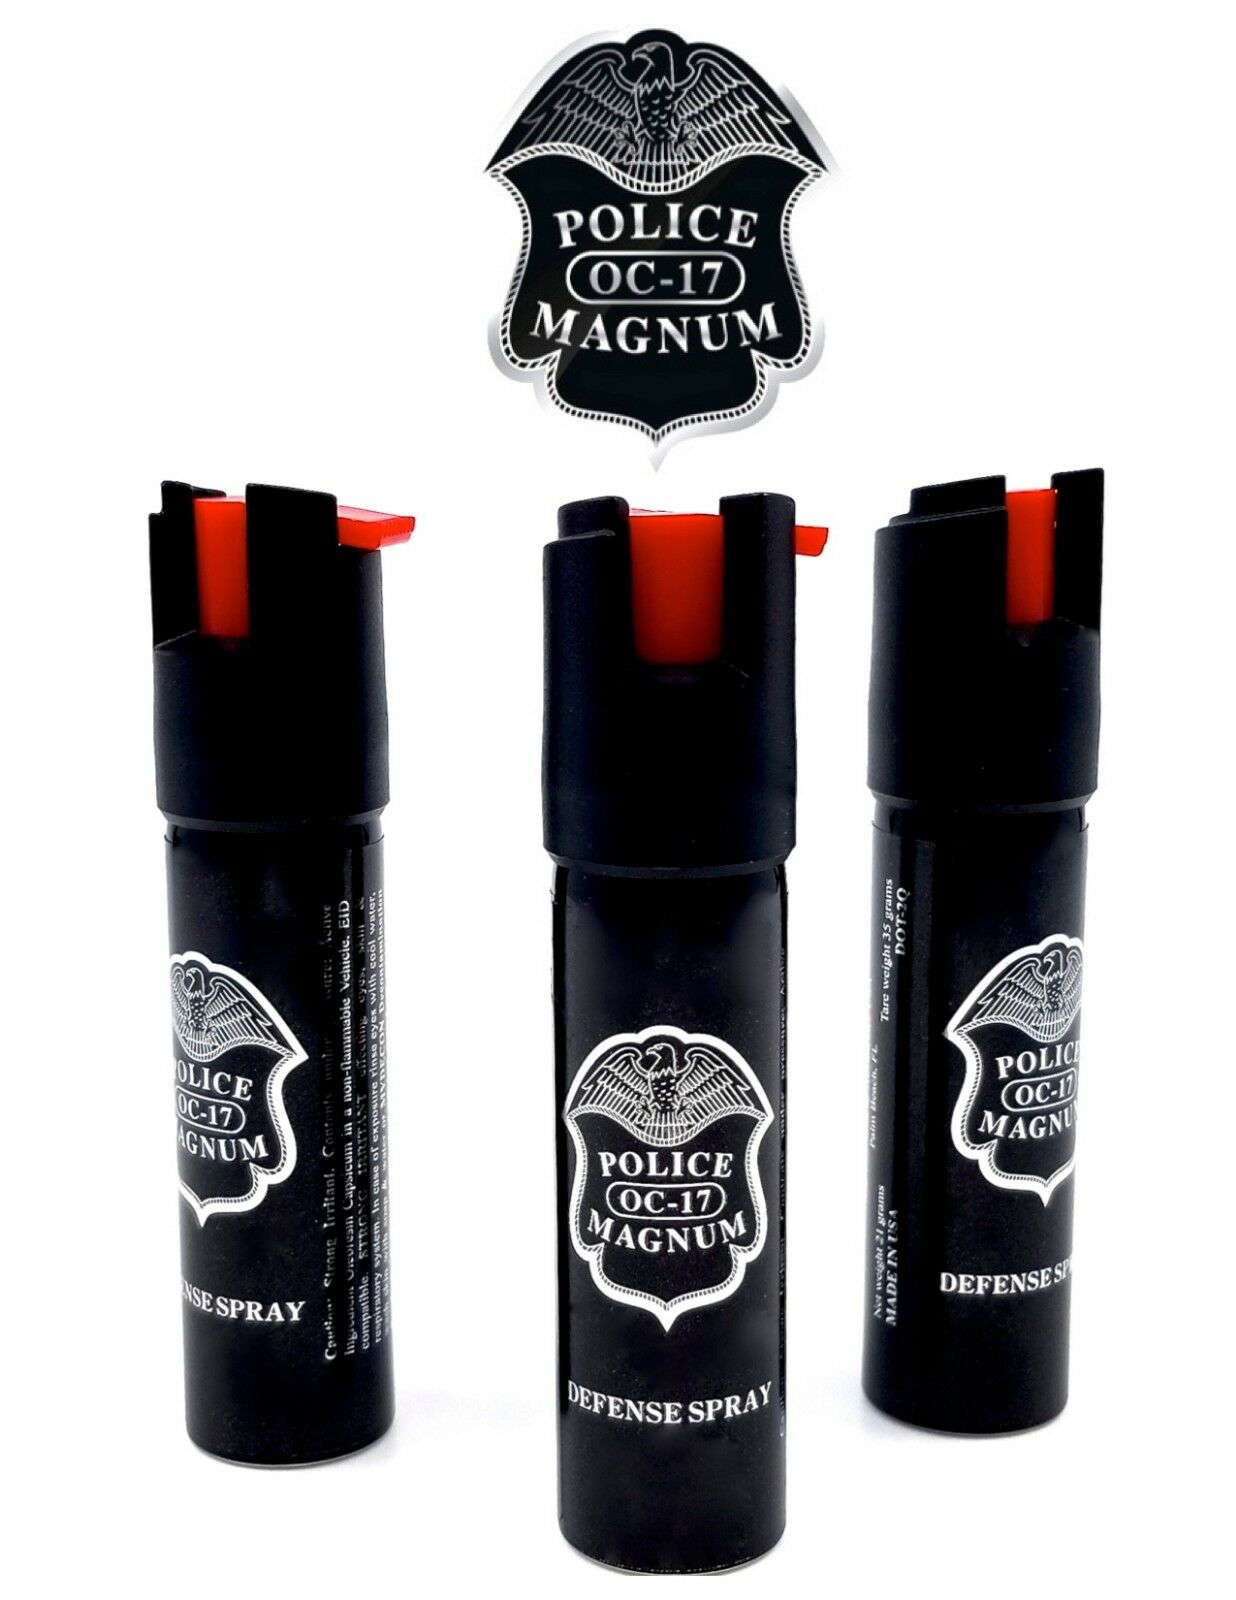 3 PACK Police Magnum pepper spray 3/4oz Safety Lock Defense Security Protection